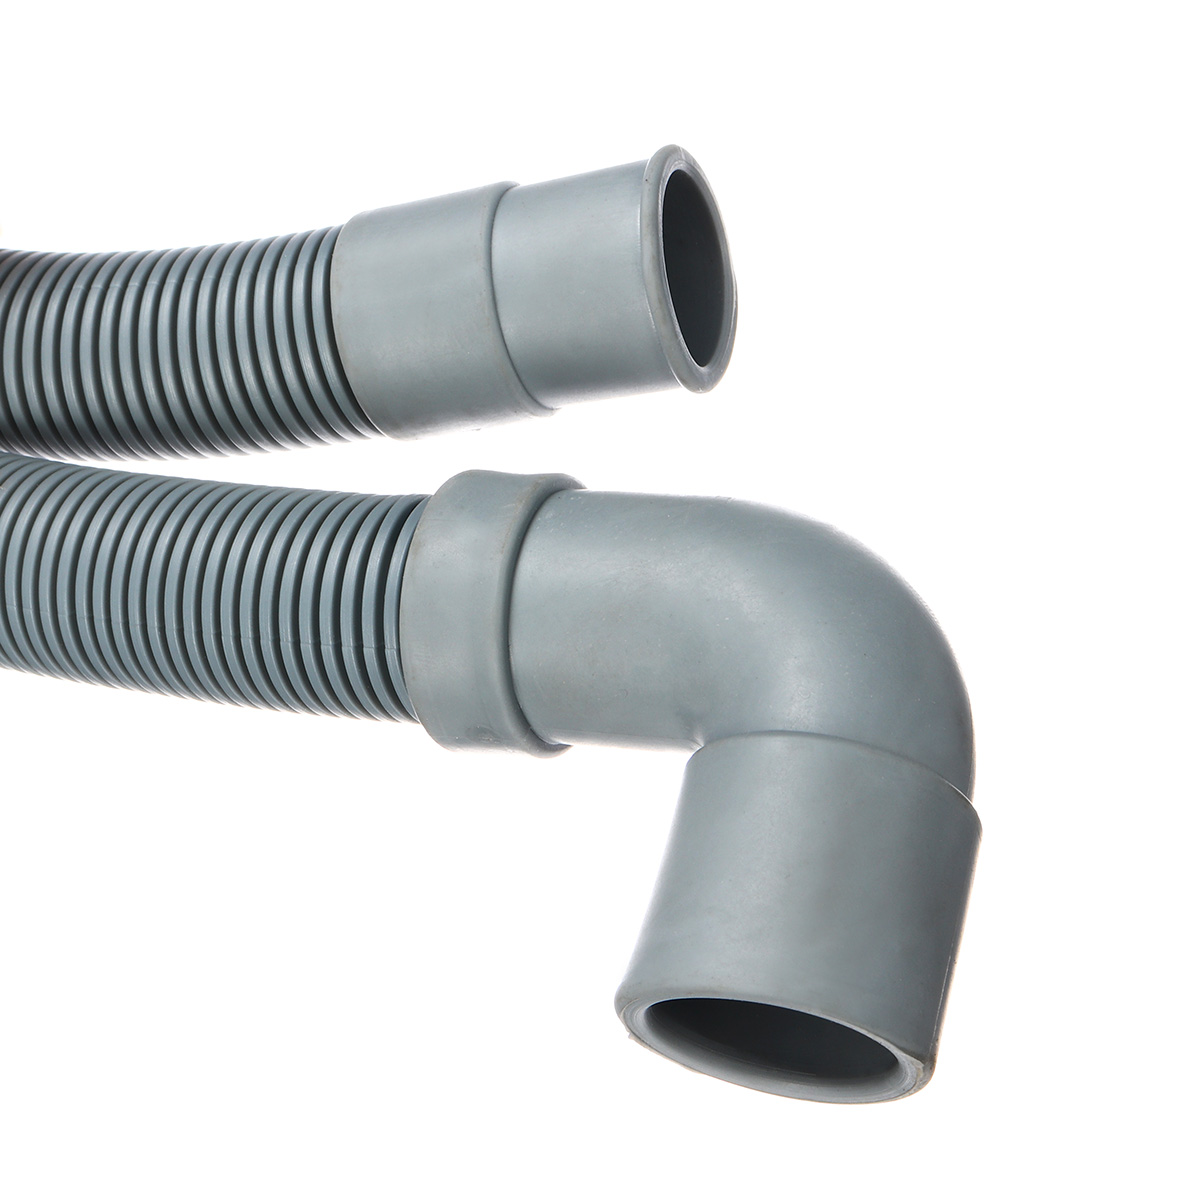 Extension Drain Outlet Pipe Hose For Siemens Washing Machine 1.5m  18mm 22mm